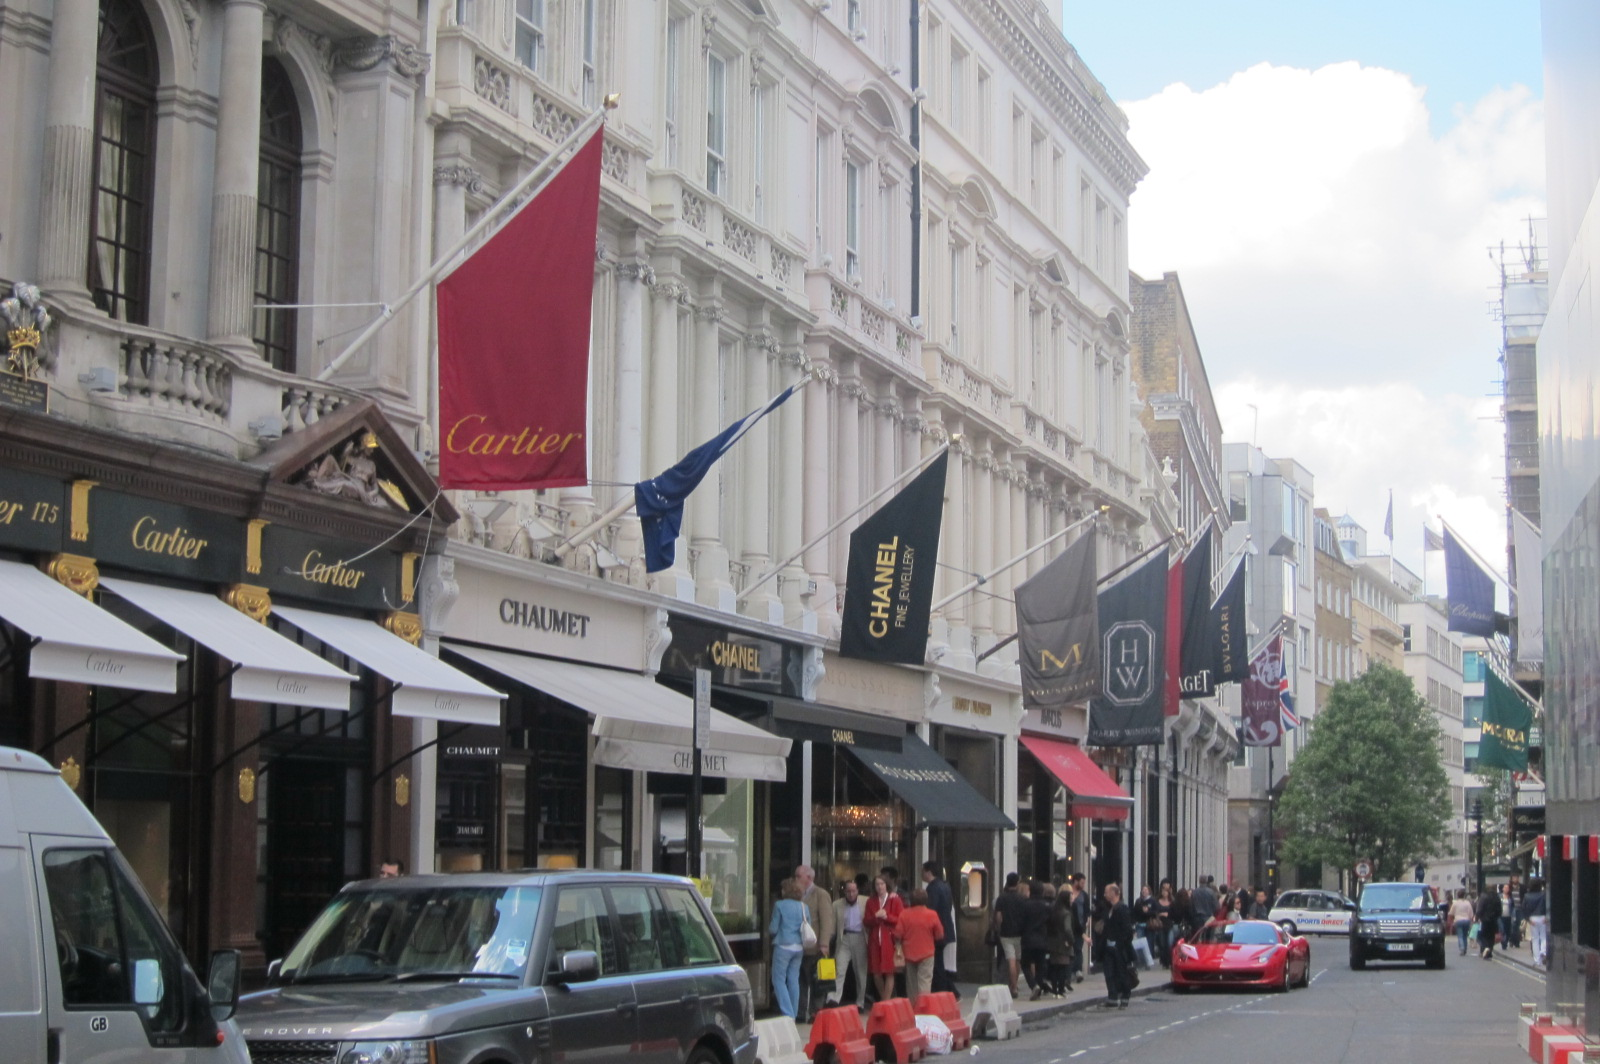 Jewelry Stores London Old Bond Street, Online Jewelry Store